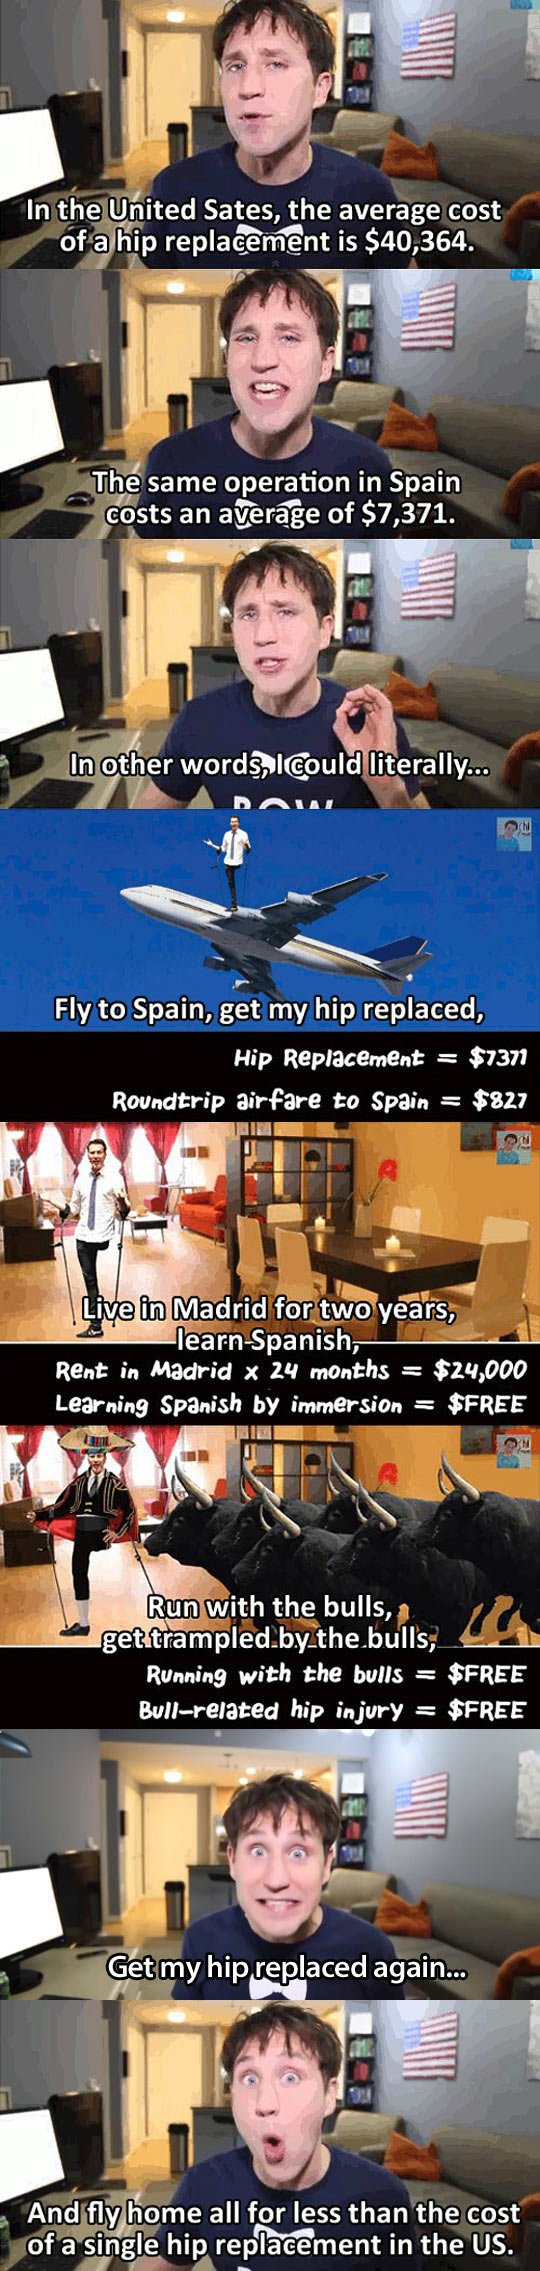 The Cost Of A Hip Replacement